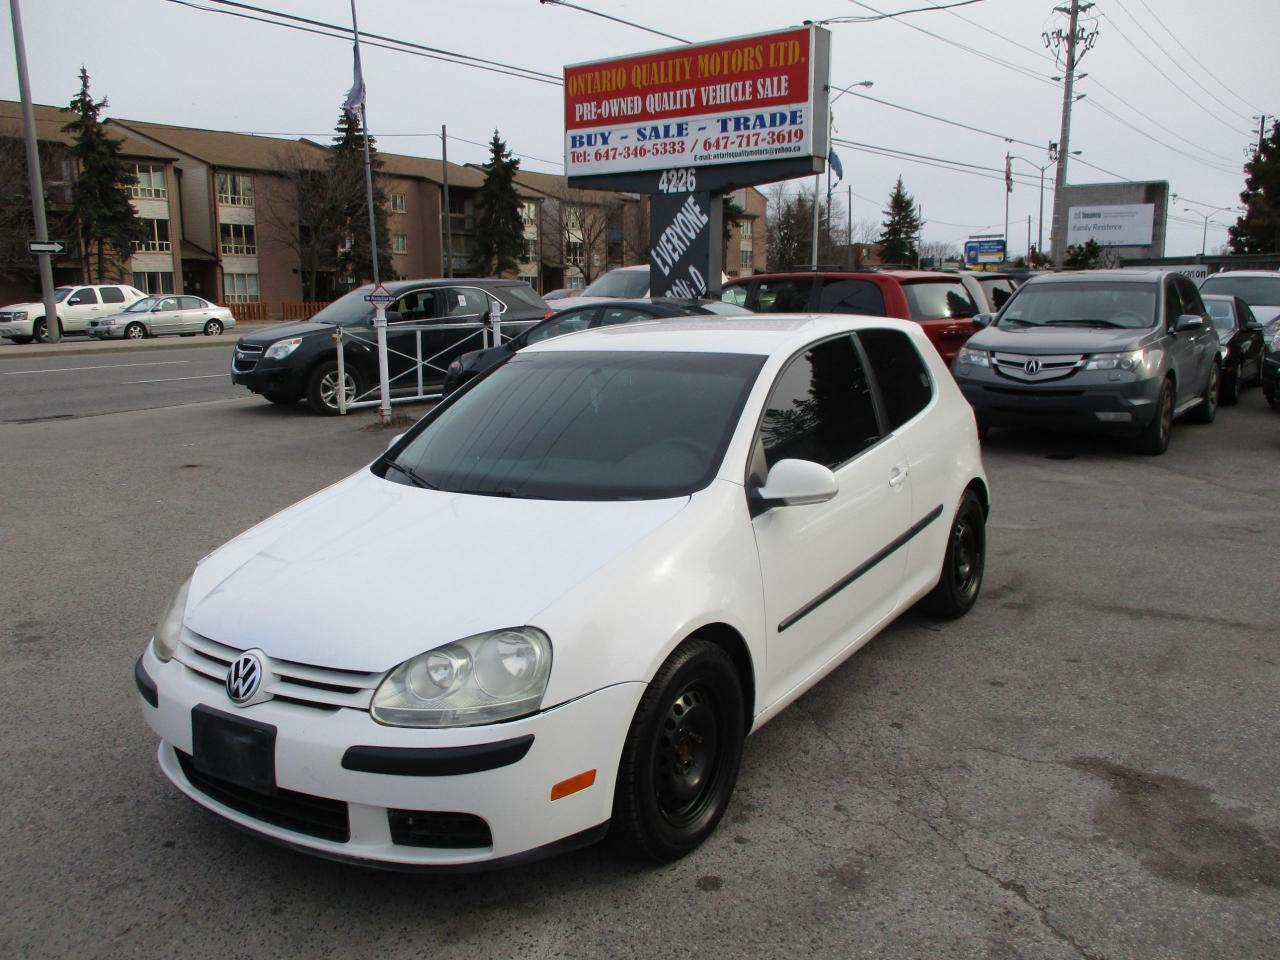 Cars For Sale Scarborough Ontario